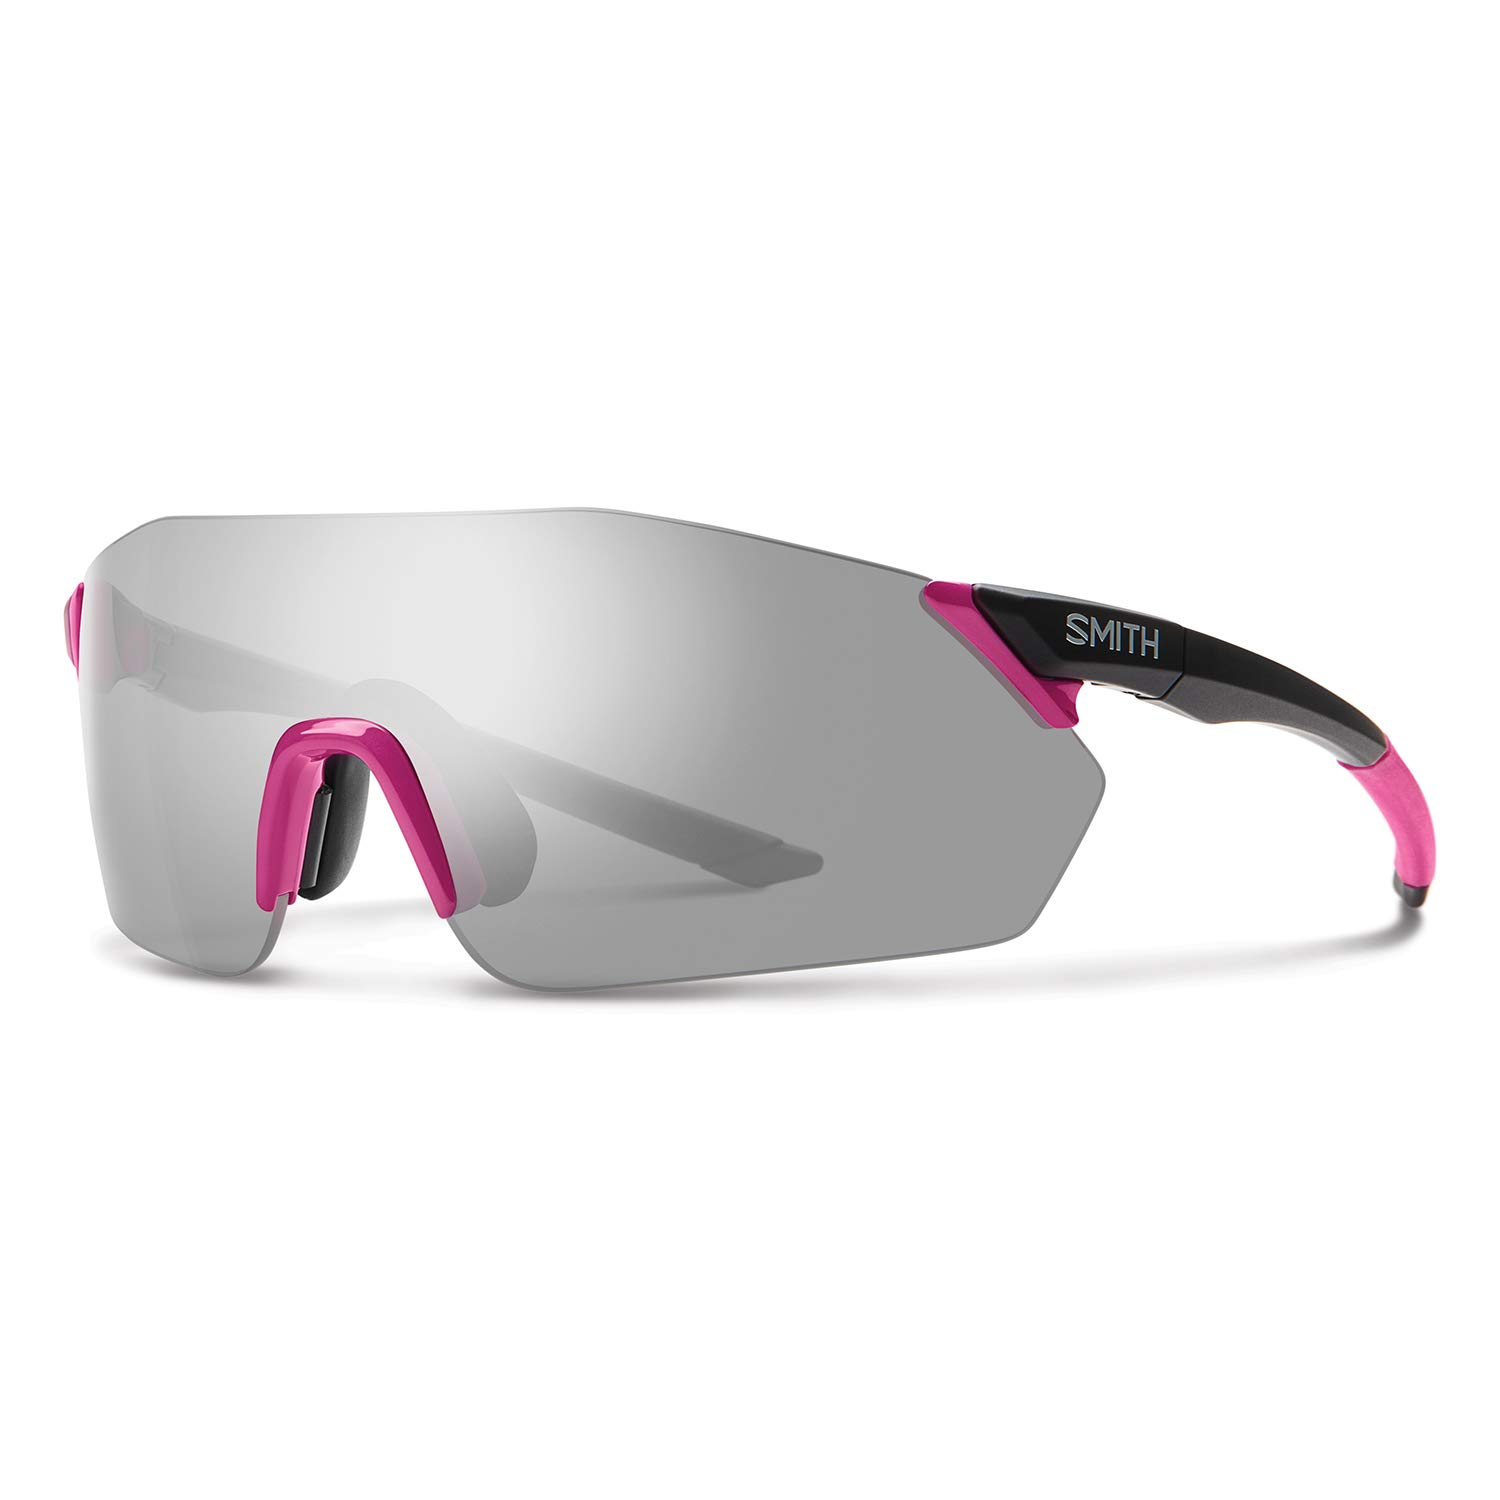 Smith Optics Reverb Sunglasses Chromapop+